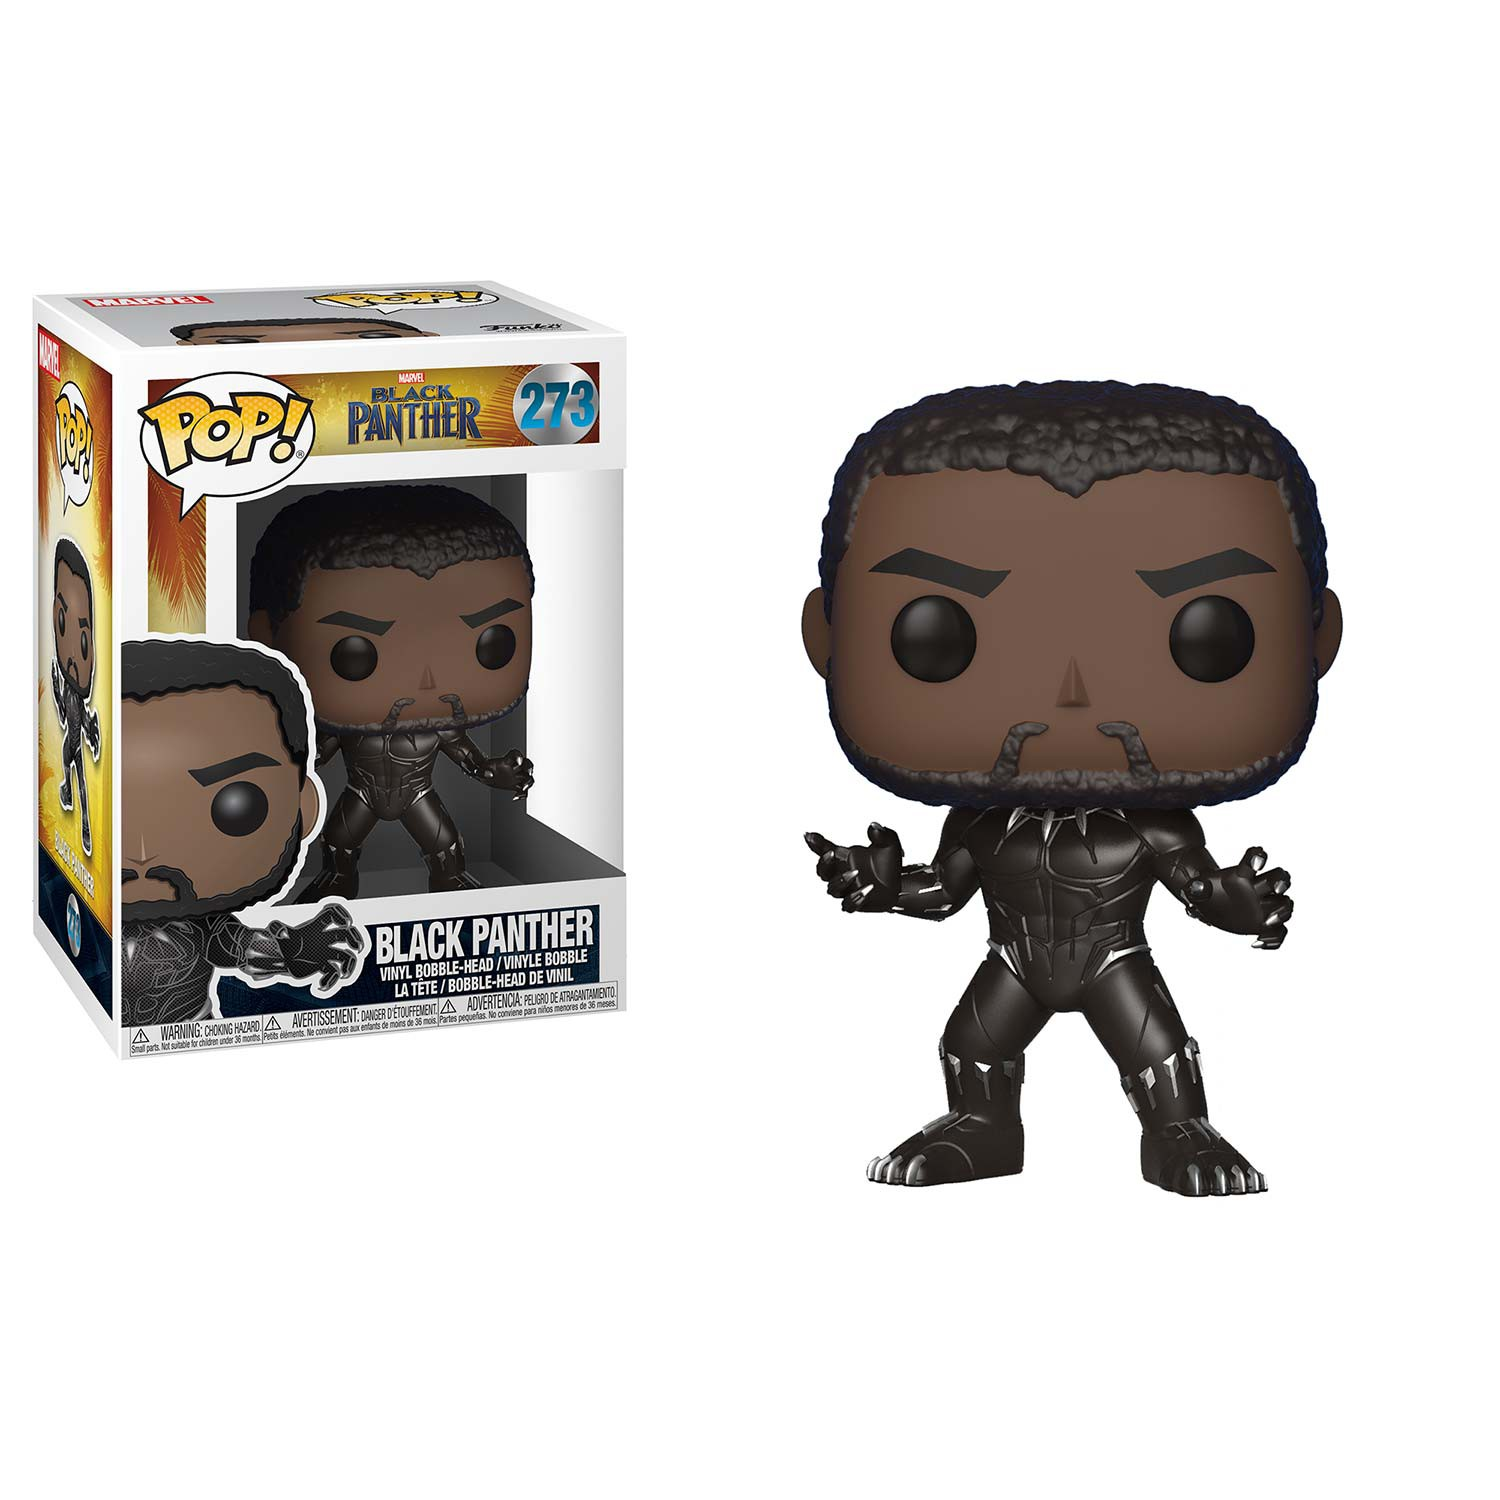 Black Panther Funko Pop Unmasked Vinyl Figure